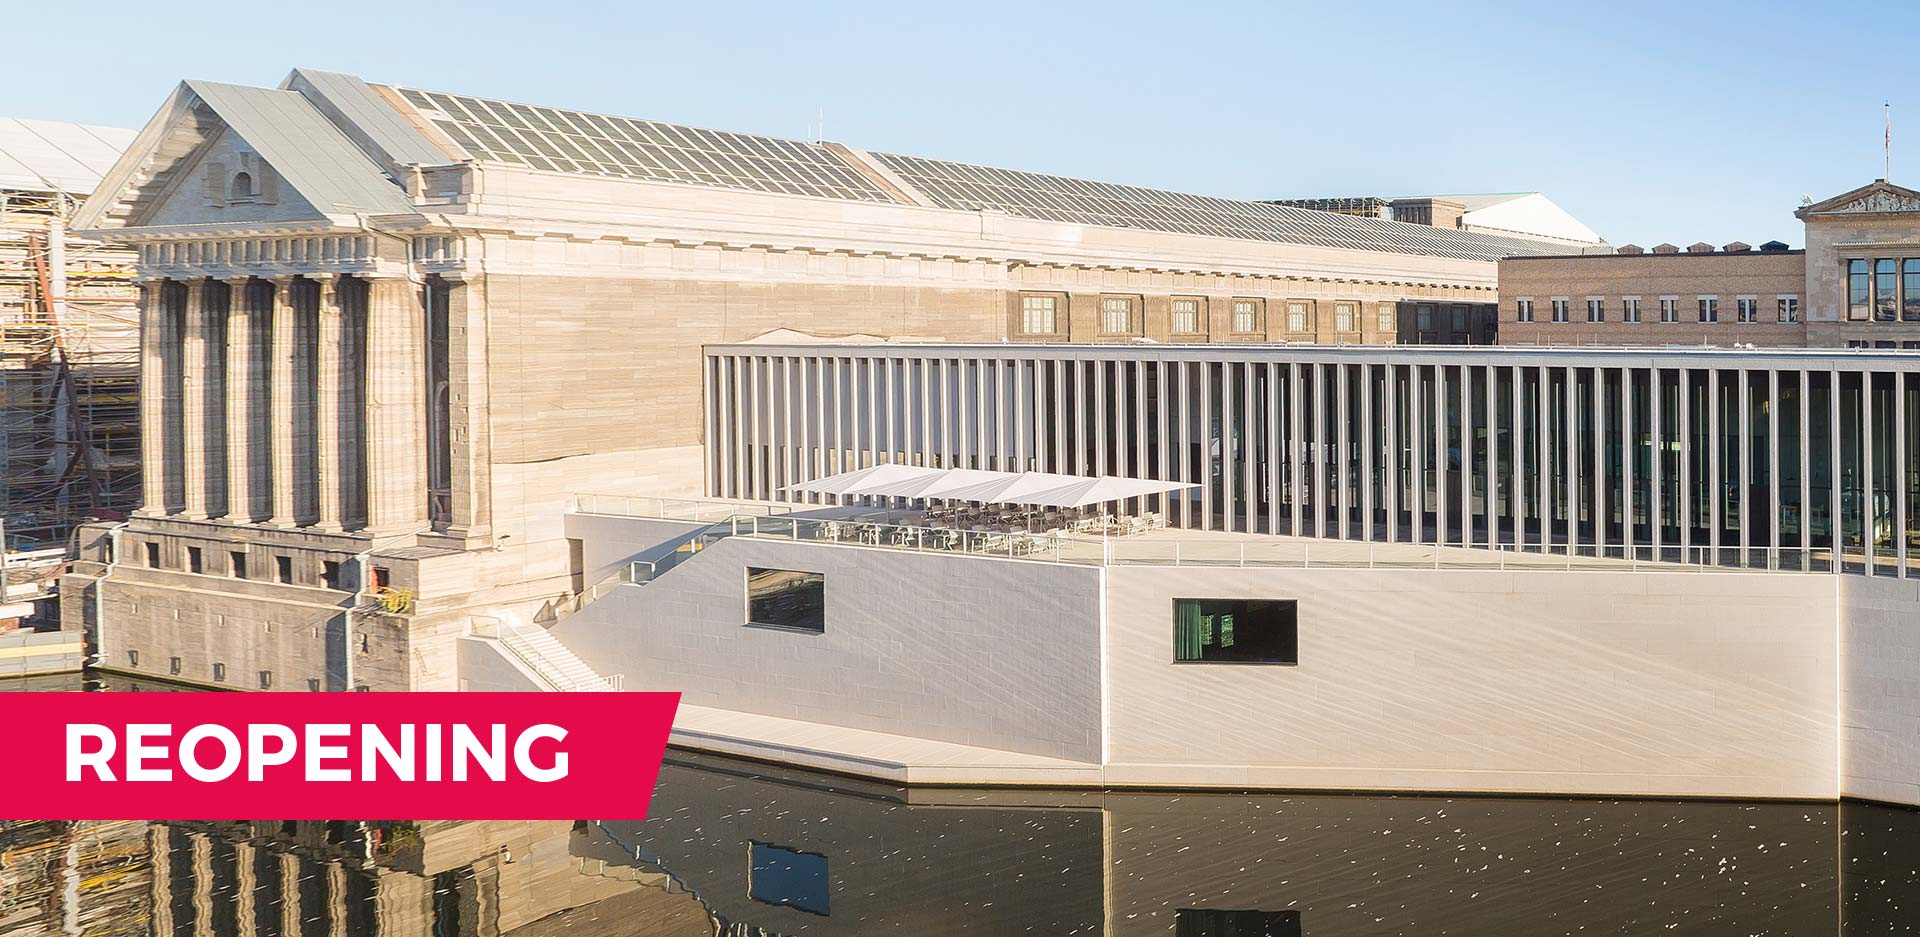 The James-Simon-Galerie and the Pergamonmuseum on the Museumsinsel Berlin